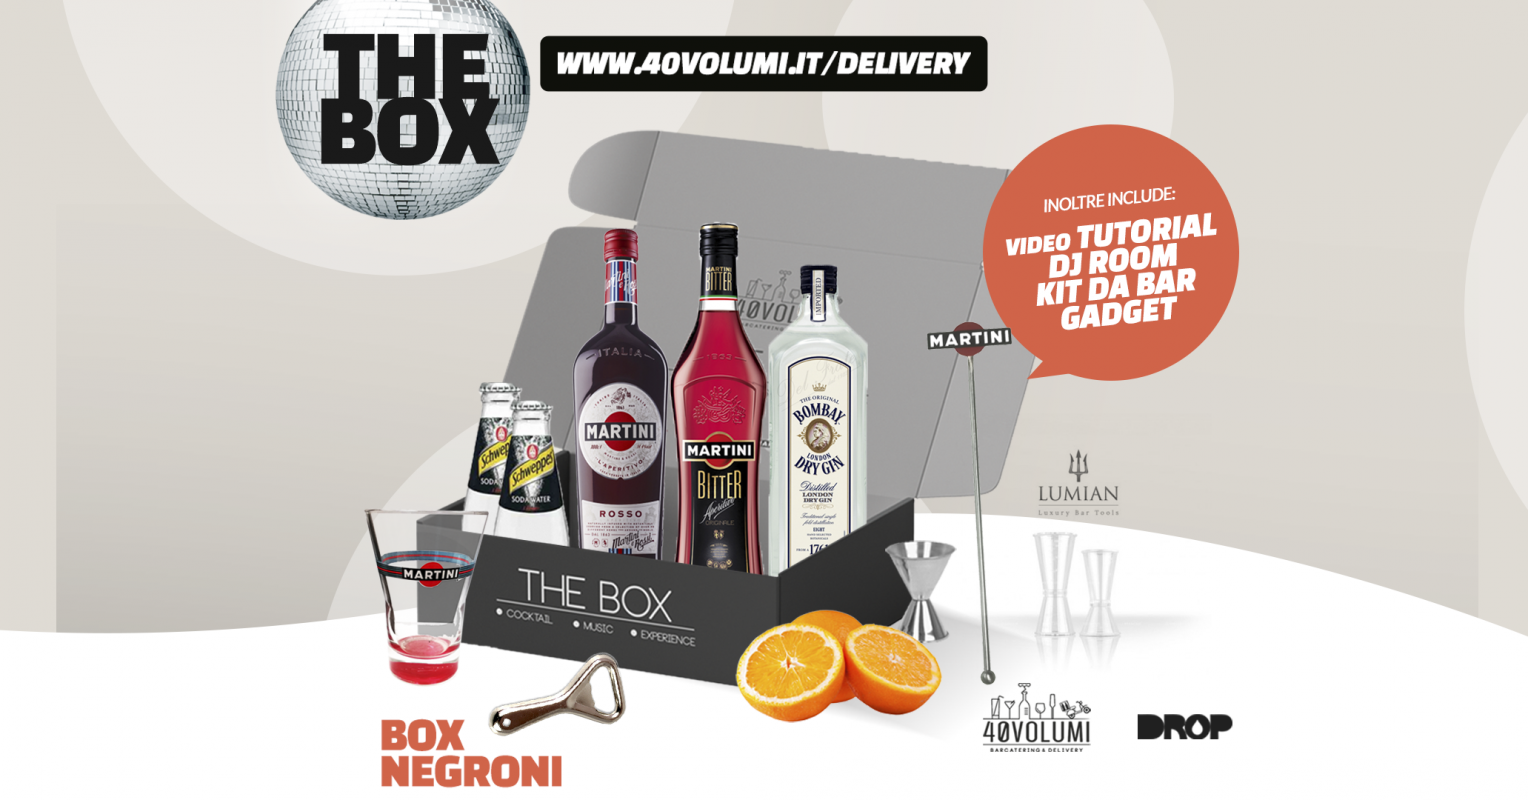 box negroni per 40 volumi